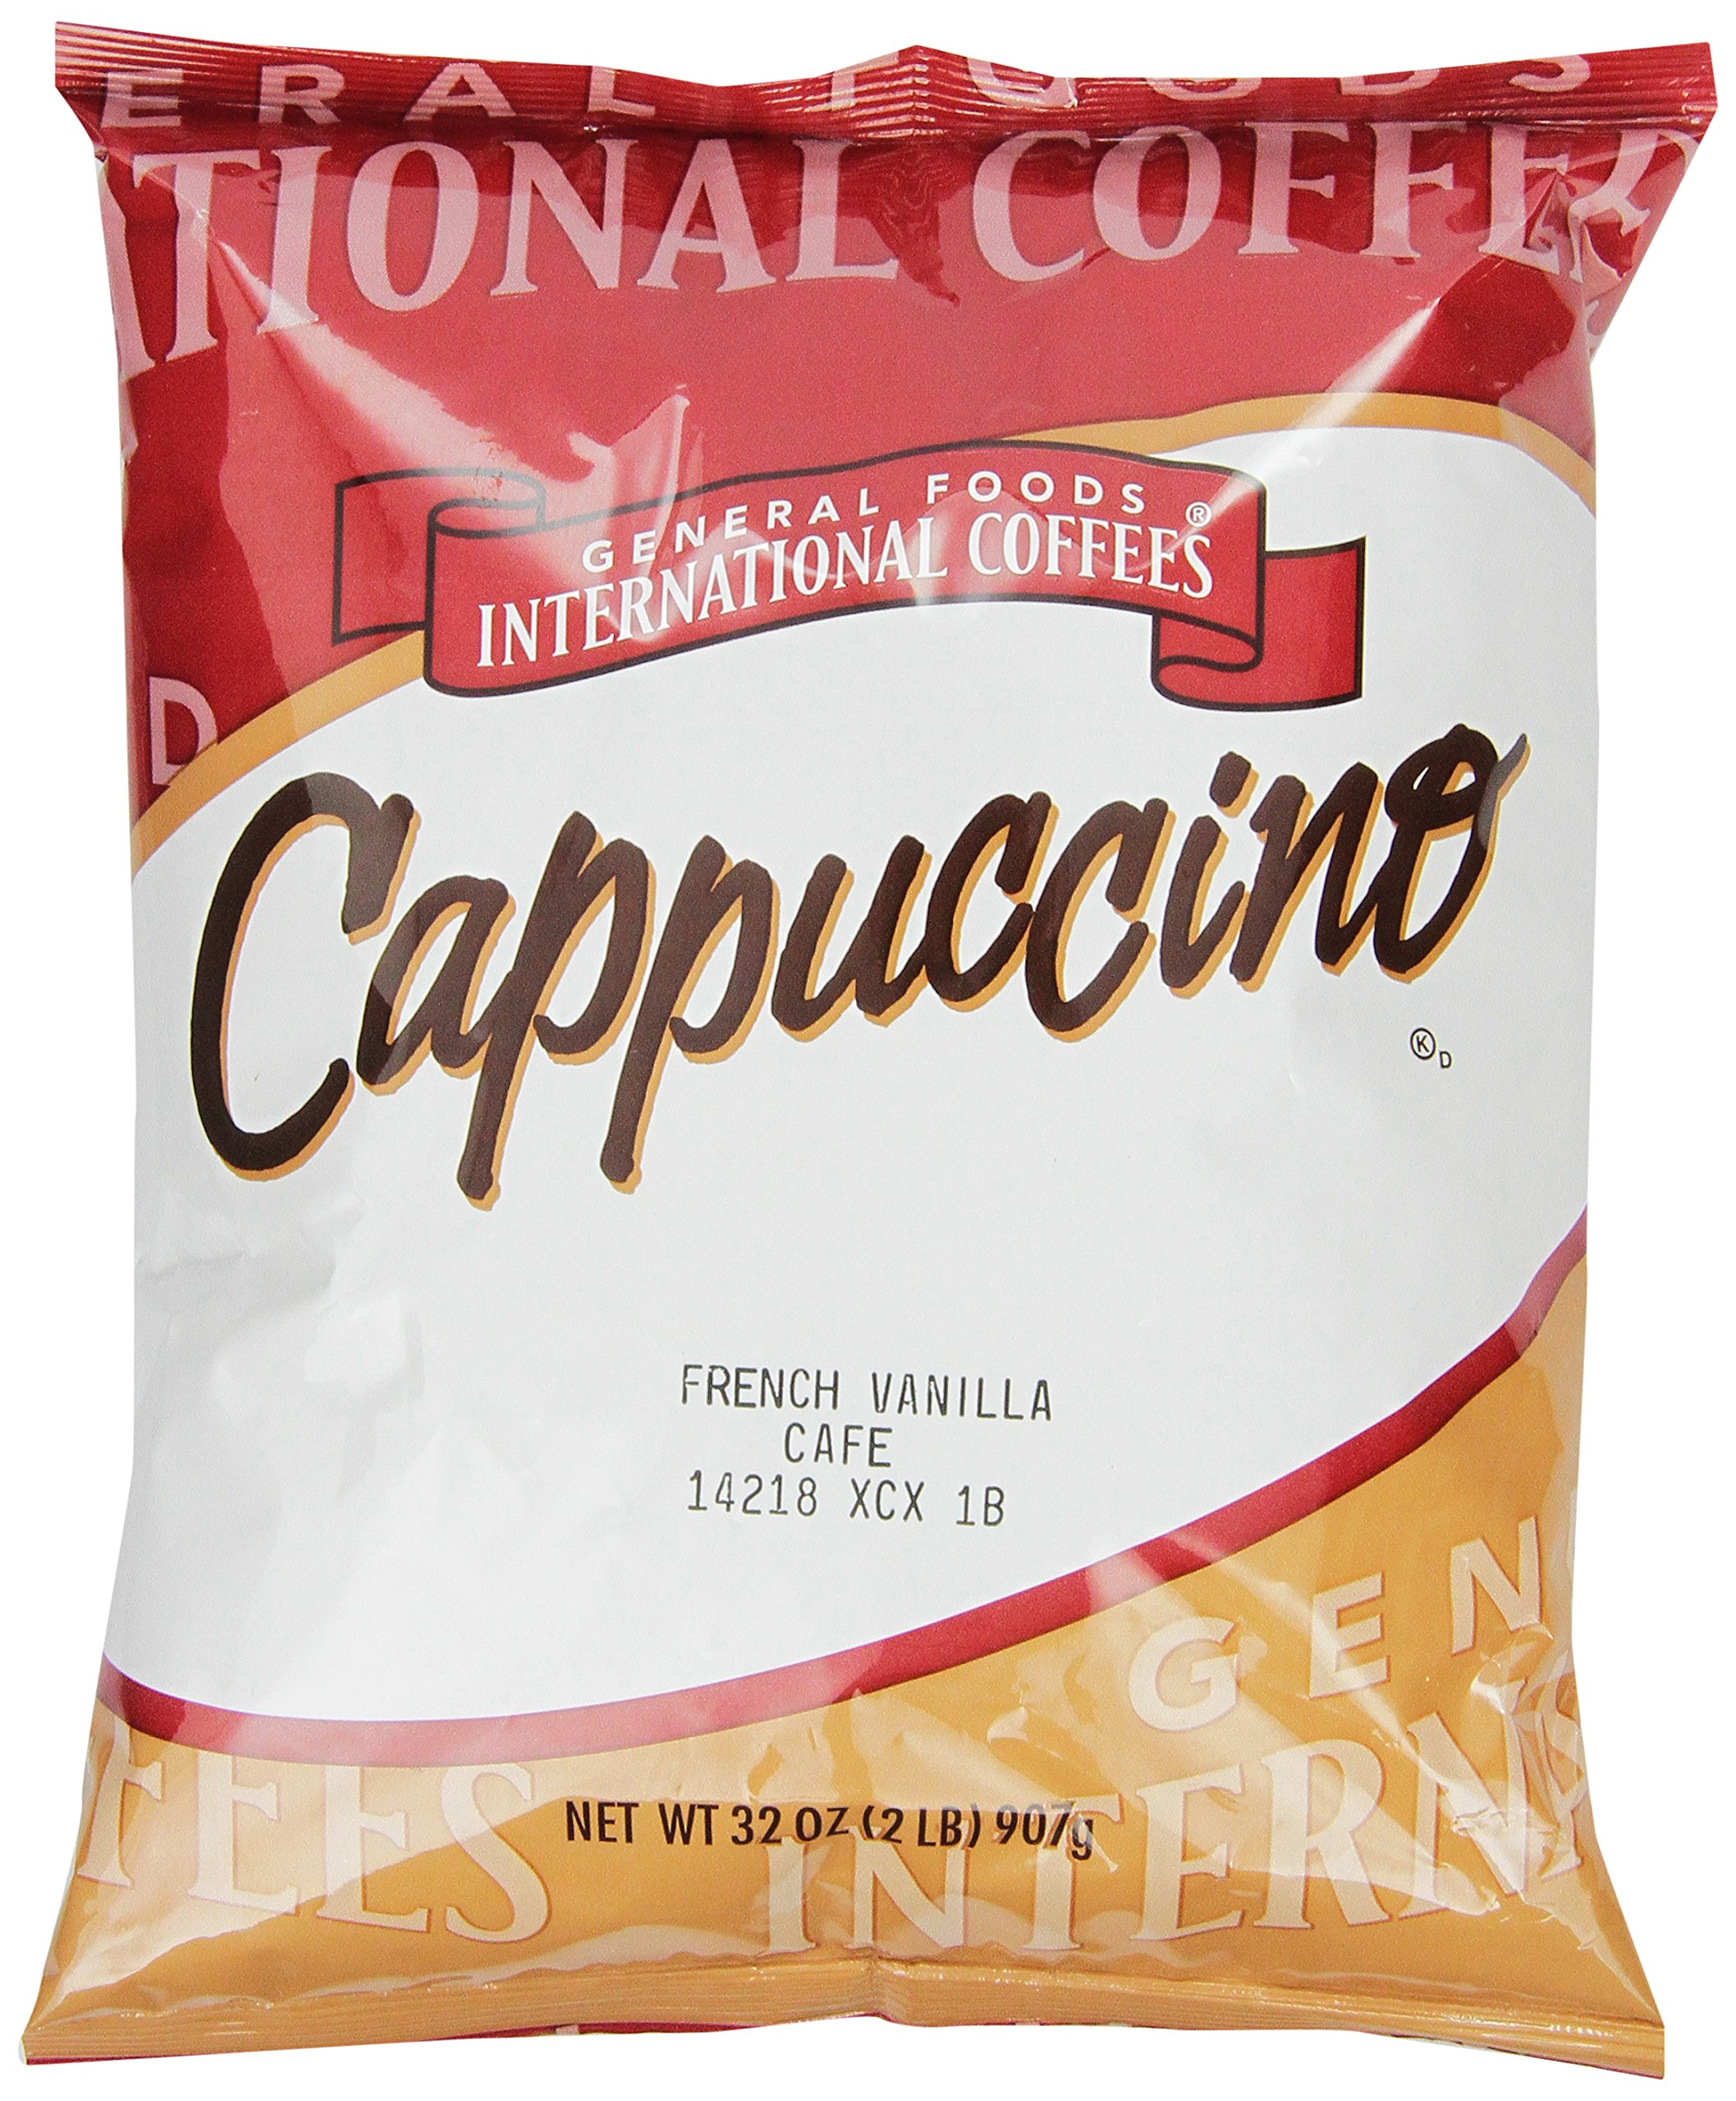 General Foods International Coffees French Vanilla Cappuccino Mix, 32-Ounce Packages (Pack of 6) by General Foods International Coffee